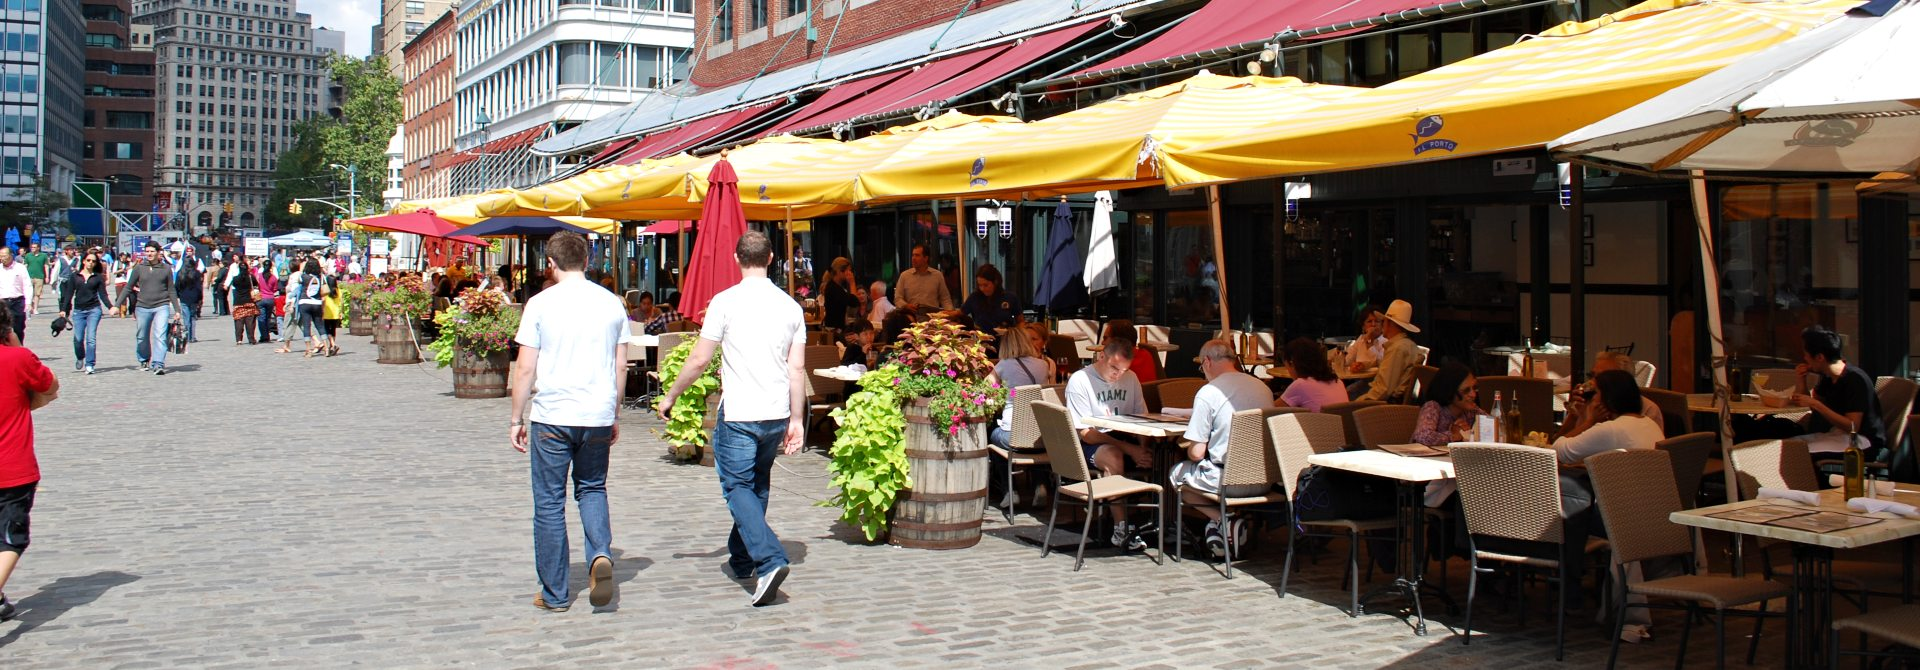 South Street Seaport Header